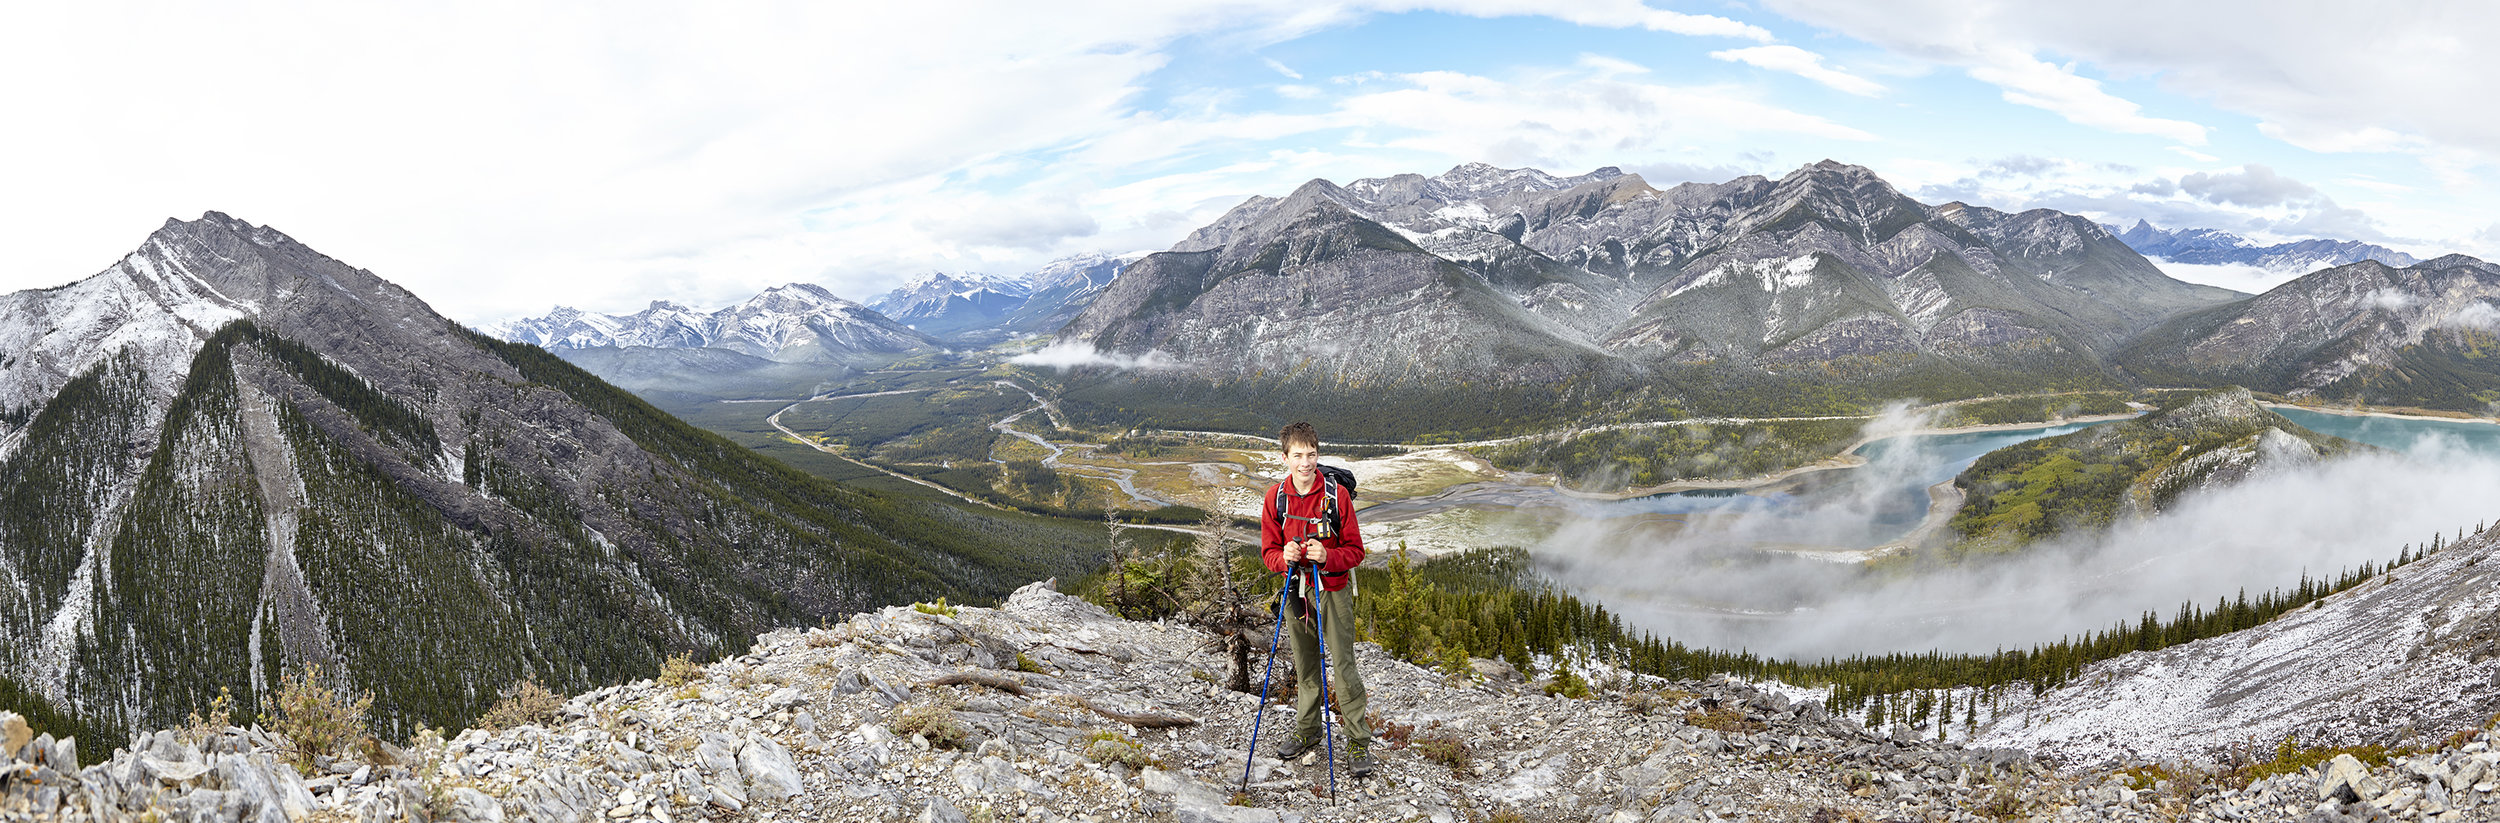 A panorama of the Kananaskis Valley from near the crux down climb.